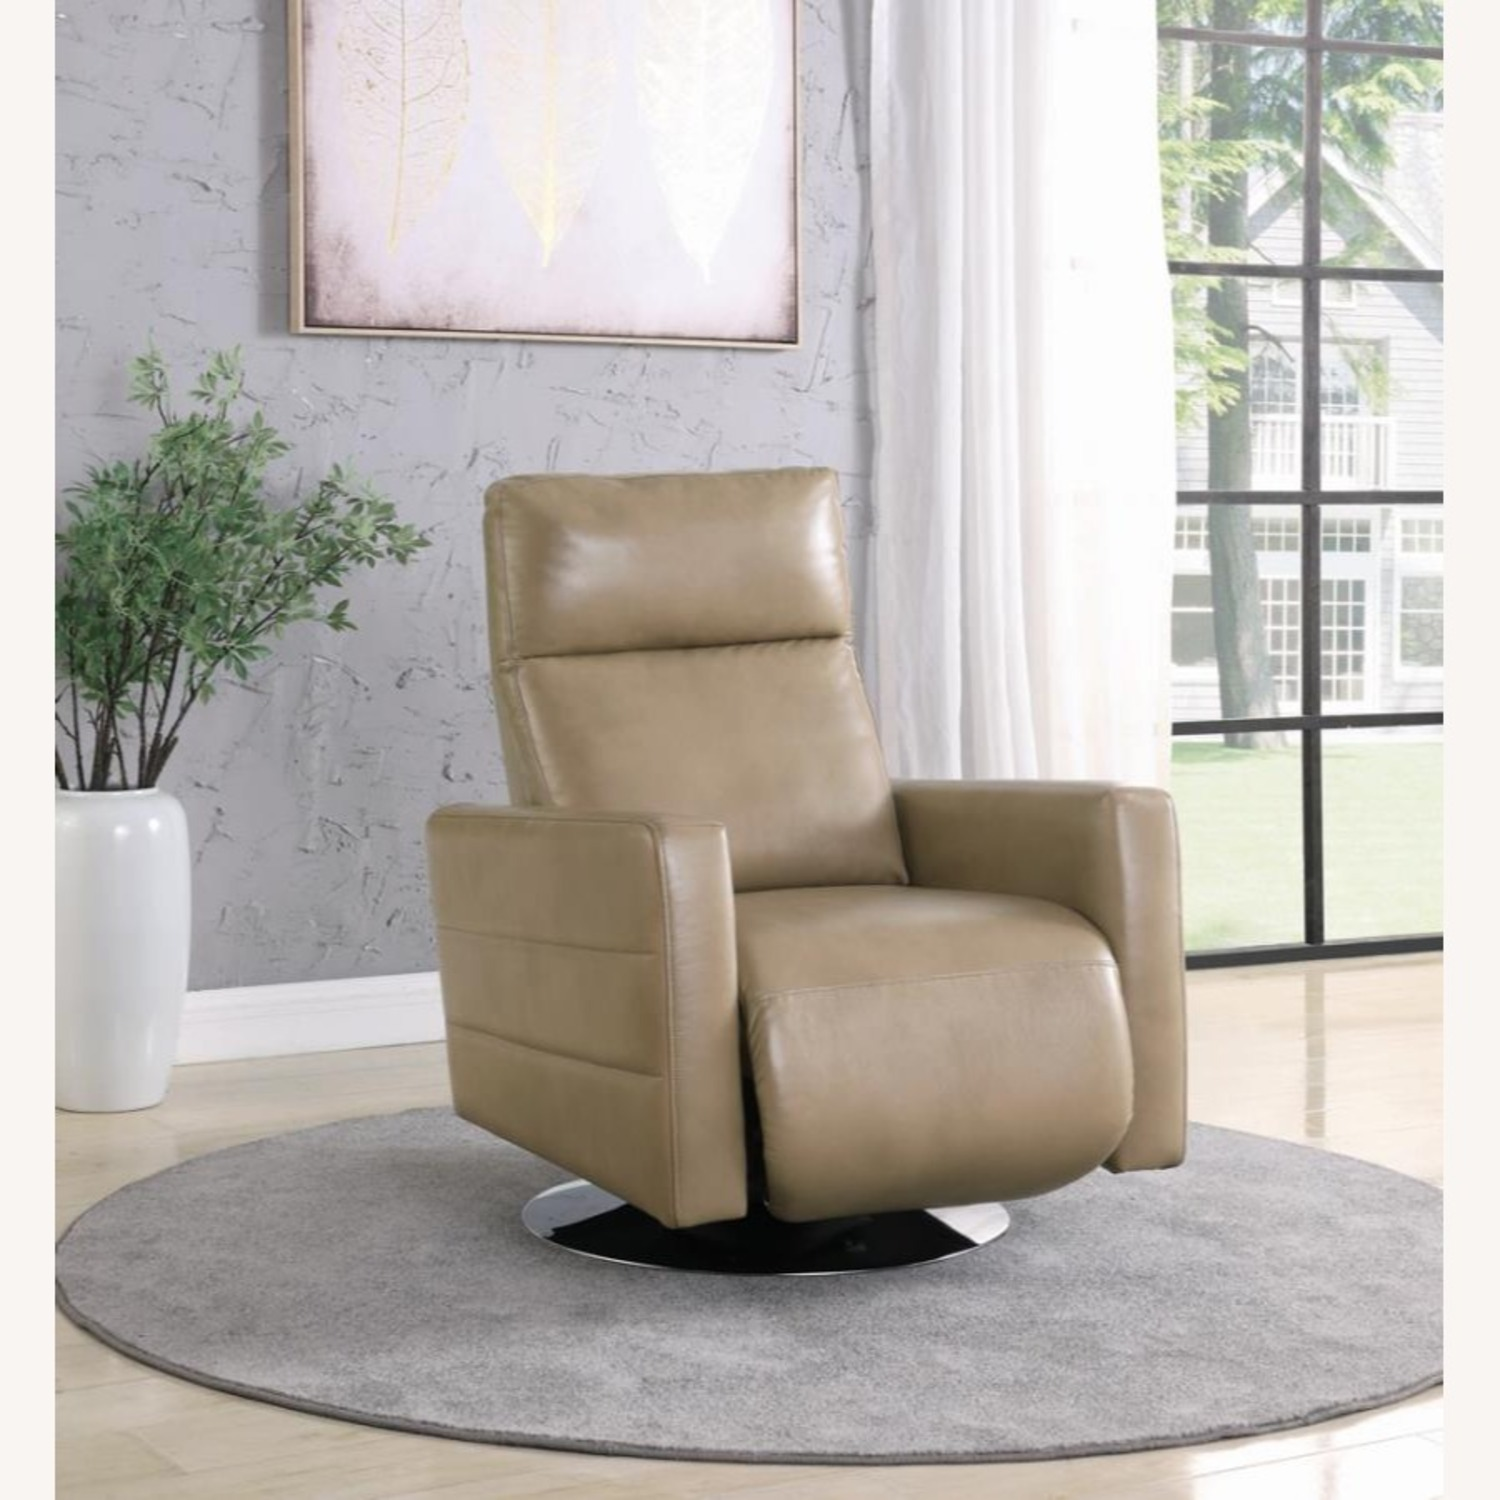 Swivel Recliner Upholstered In Taupe Performance - image-5